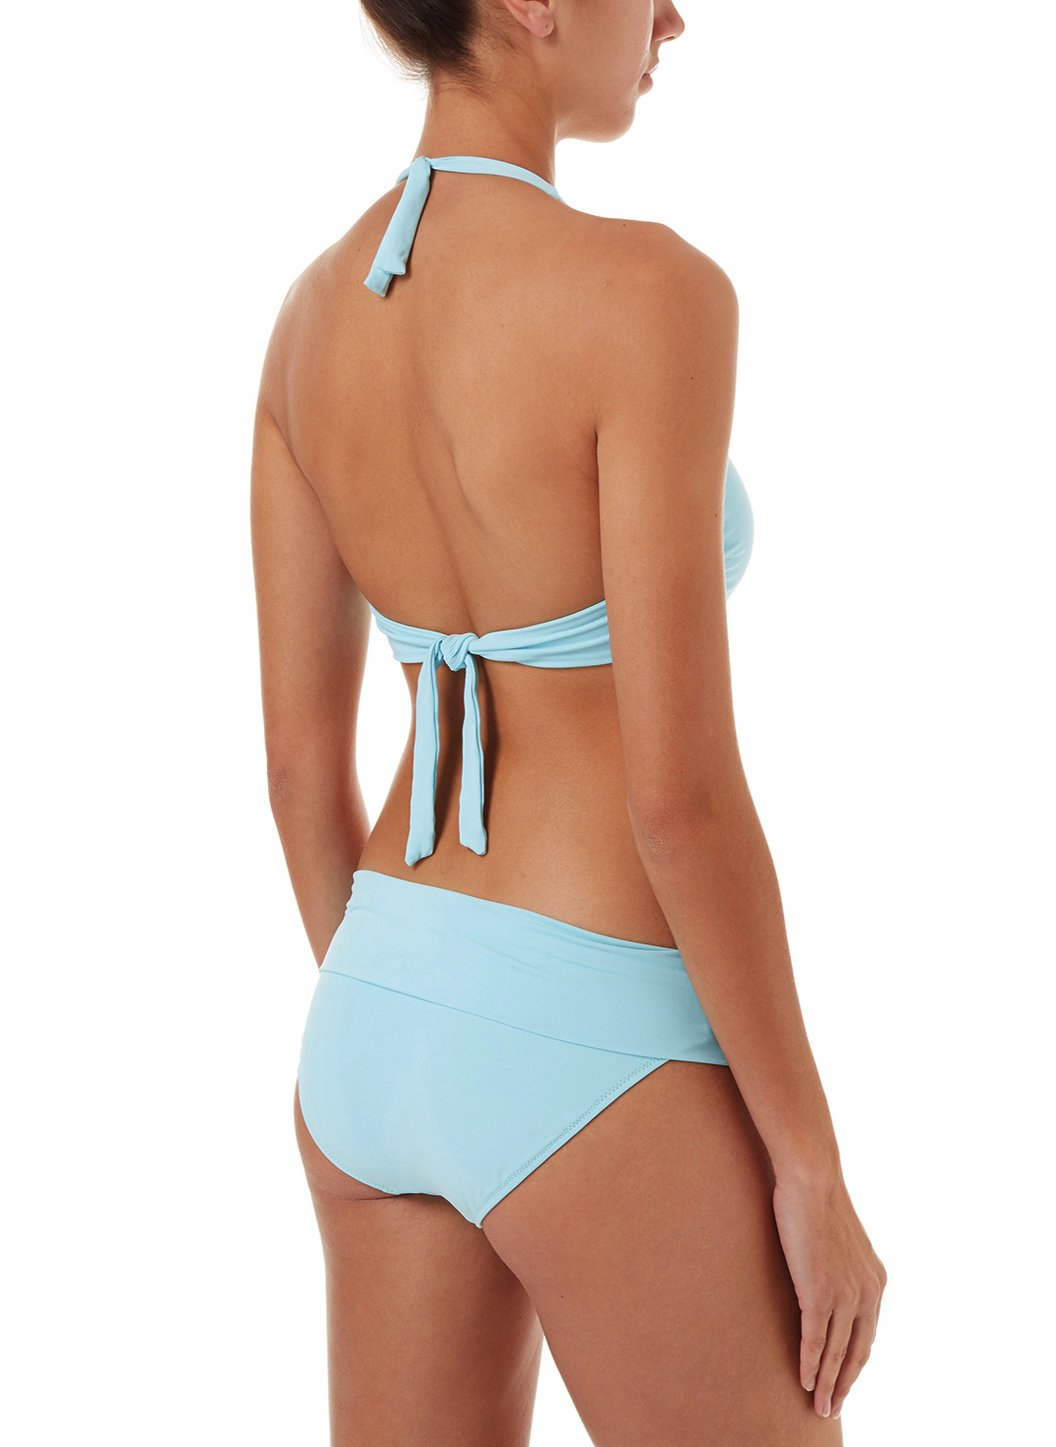 brussels sky halterneck ring supportive bikini 2019 B